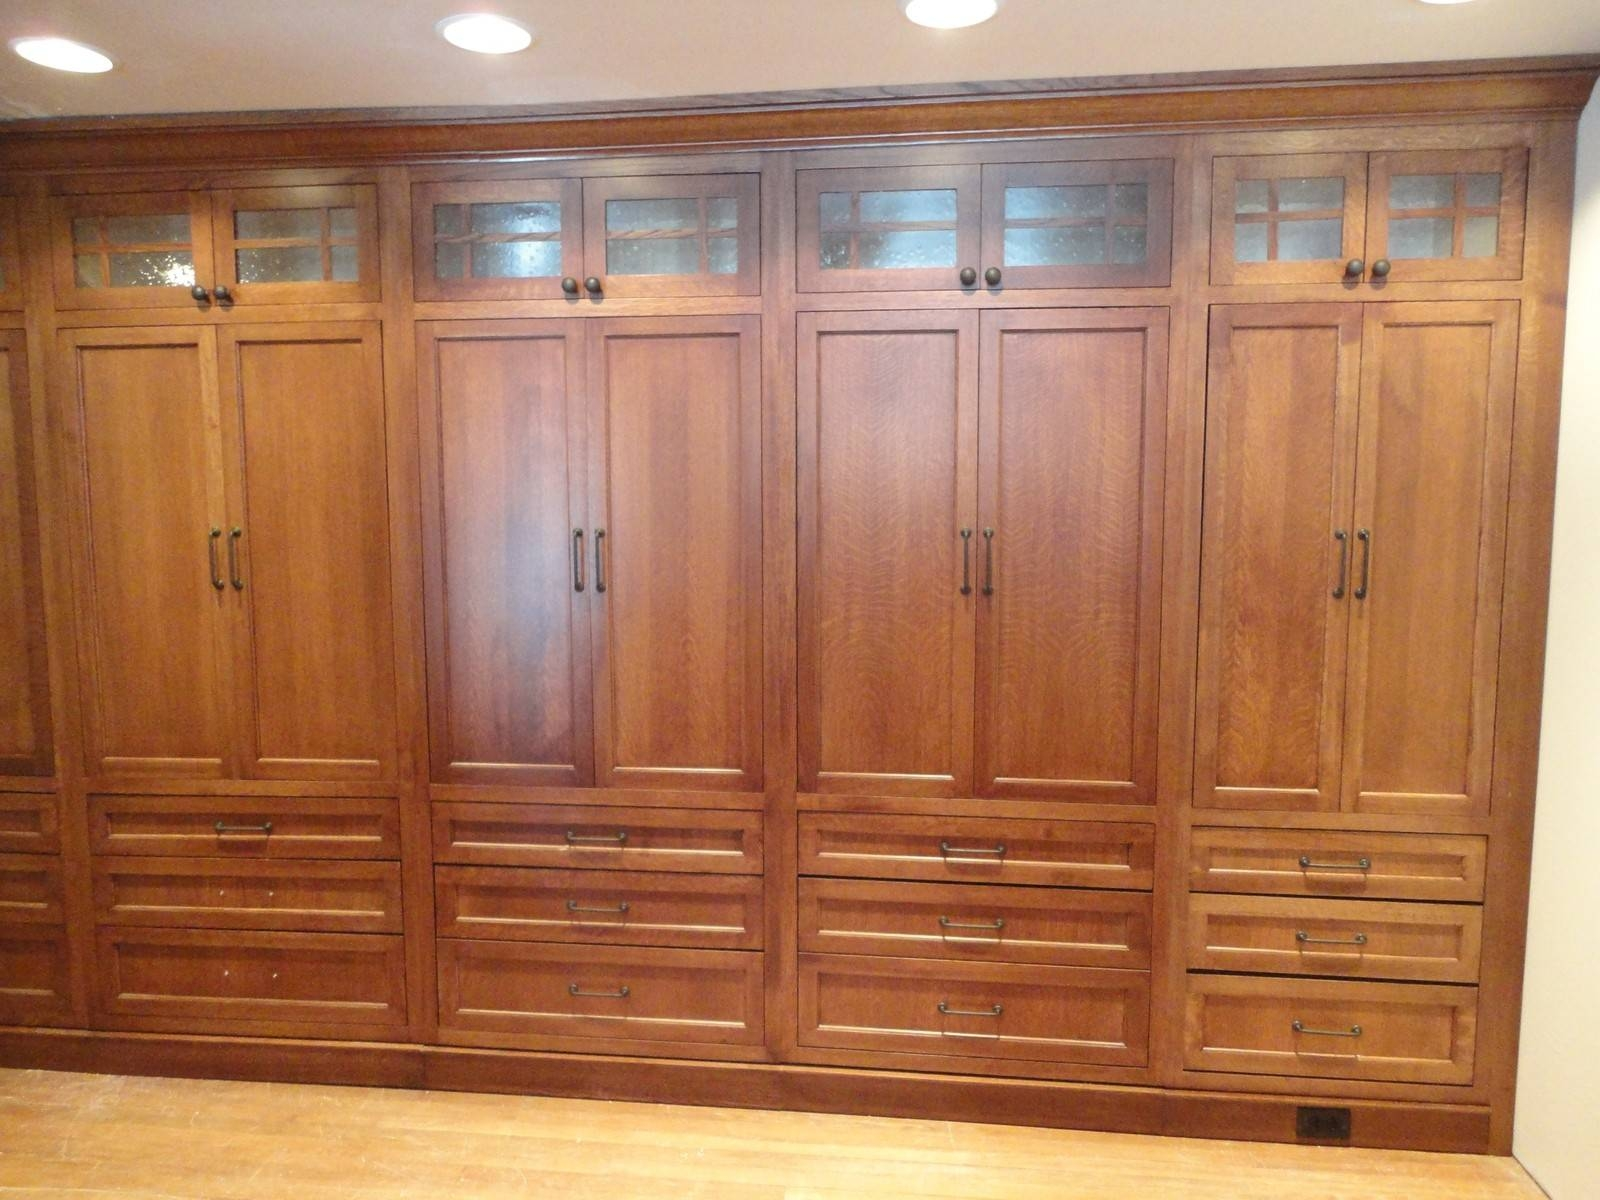 High Cream Wooden Wardrobe With Sliding Door Also Shelves Inside for Wardrobe With Drawers And Shelves (Image 17 of 30)